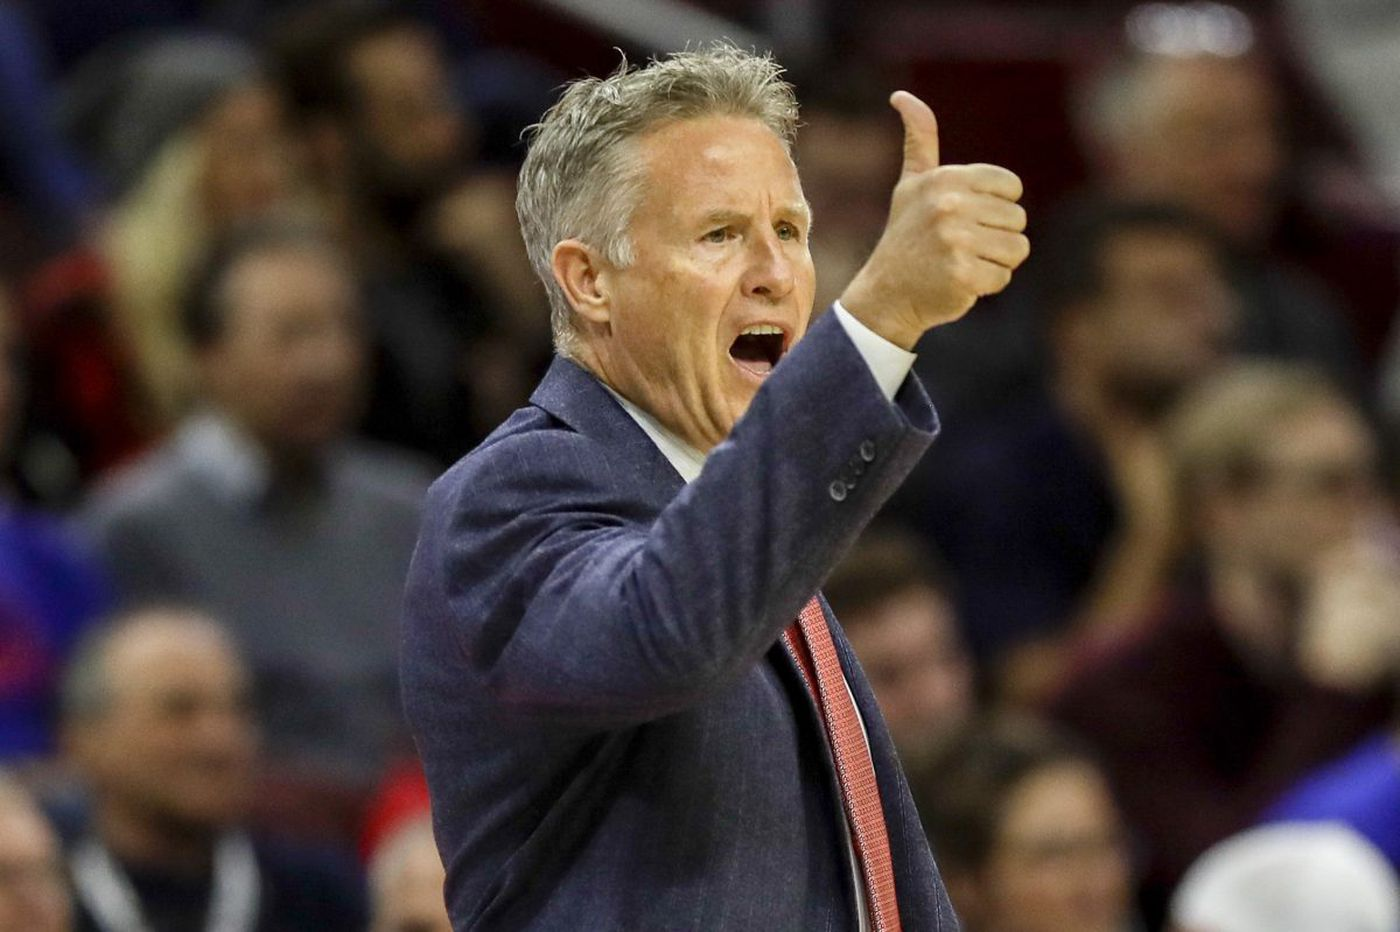 Sixers coach Brett Brown: 'We've still got a long ways to go' on civil rights